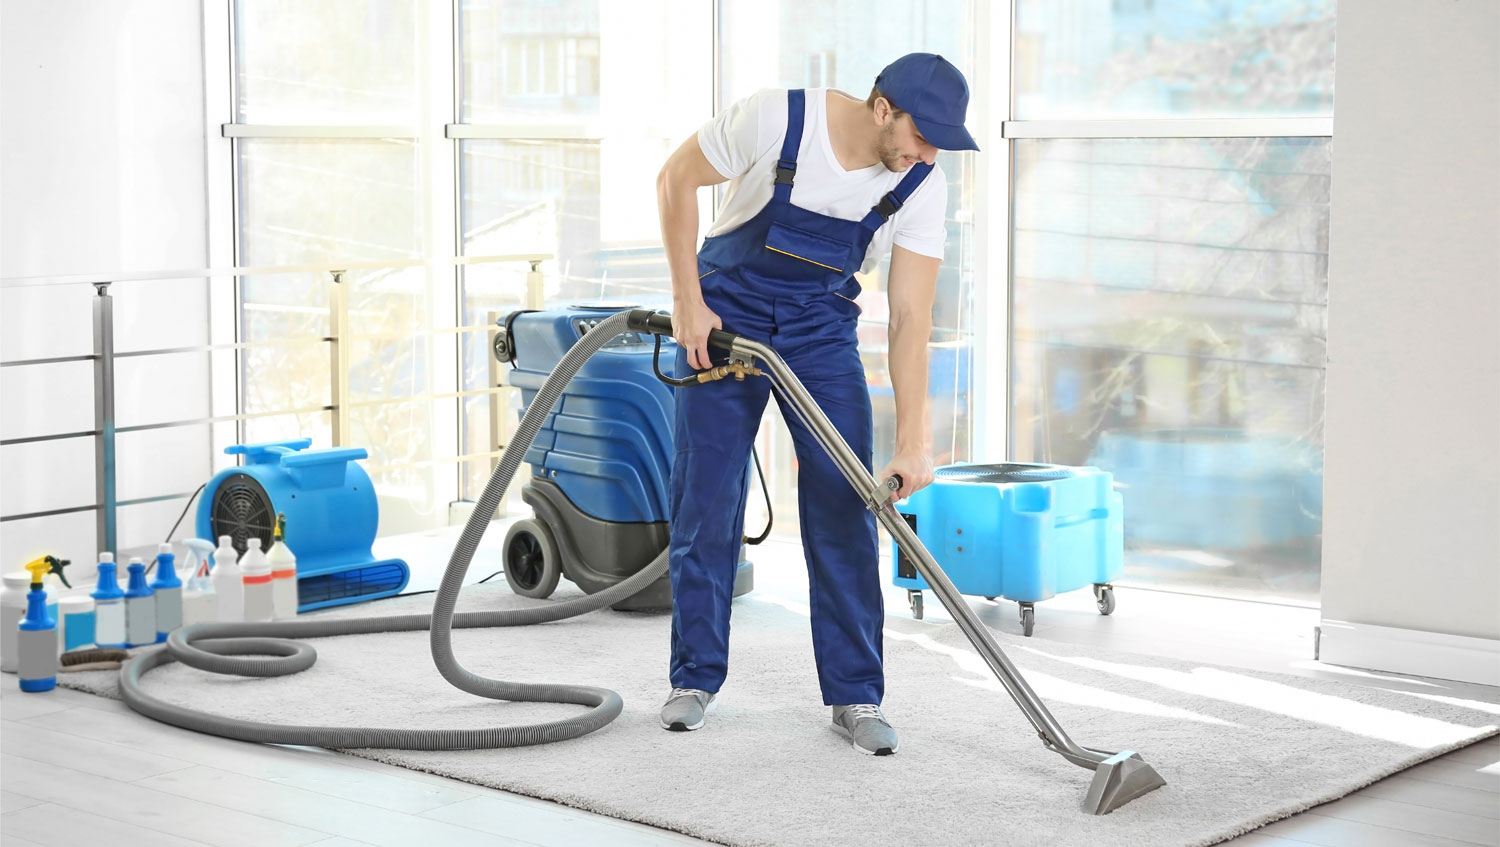 Water Damage Repair and Restoration Specializing Wet Carpets